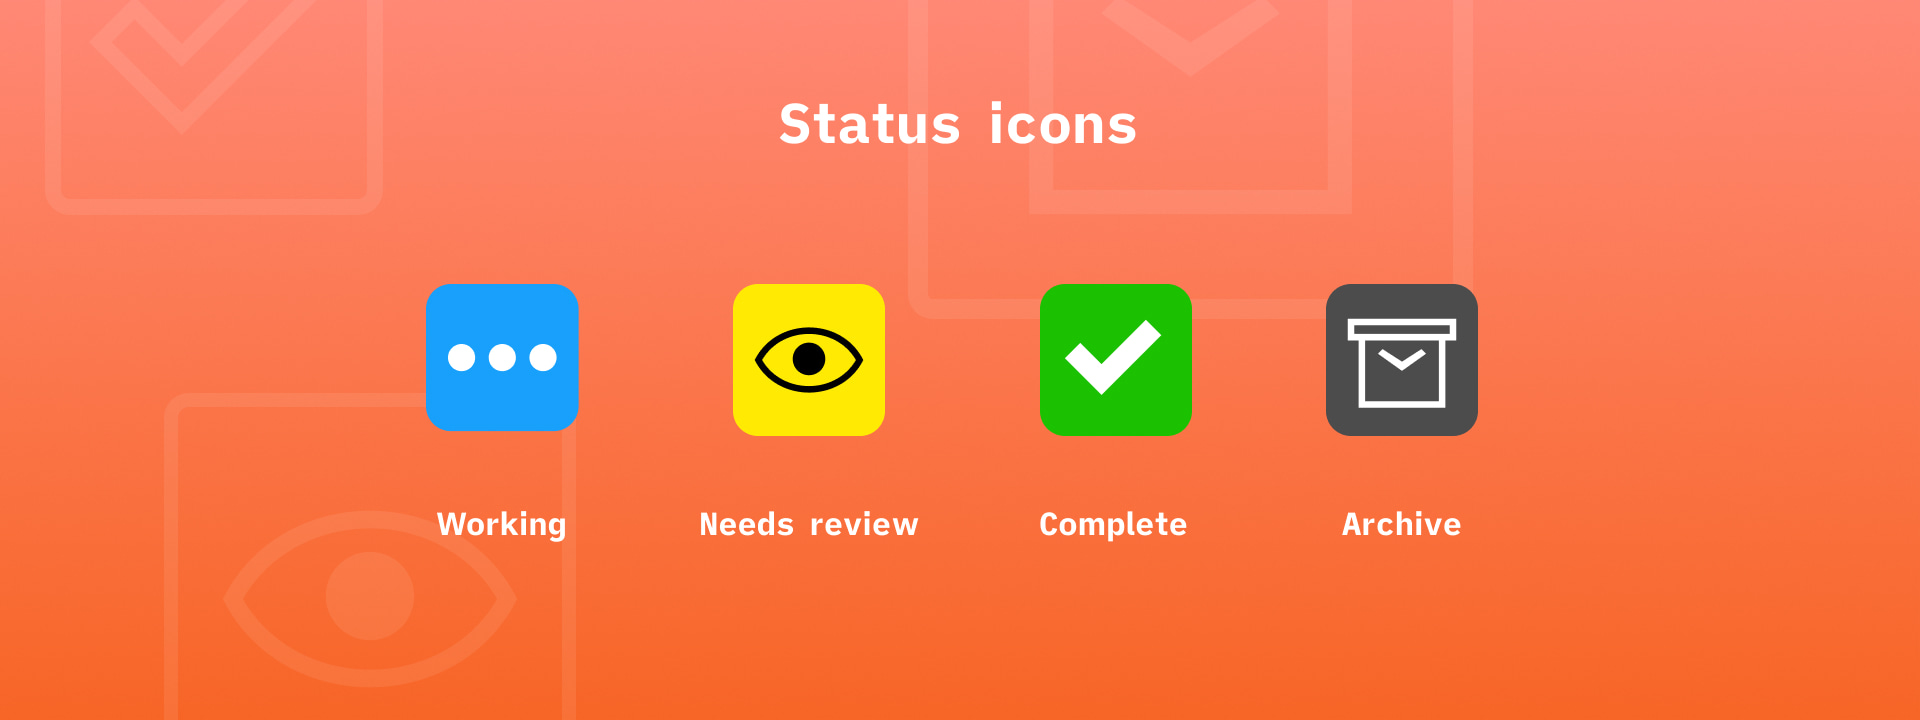 Four icons for working, needs review, complete, and archive